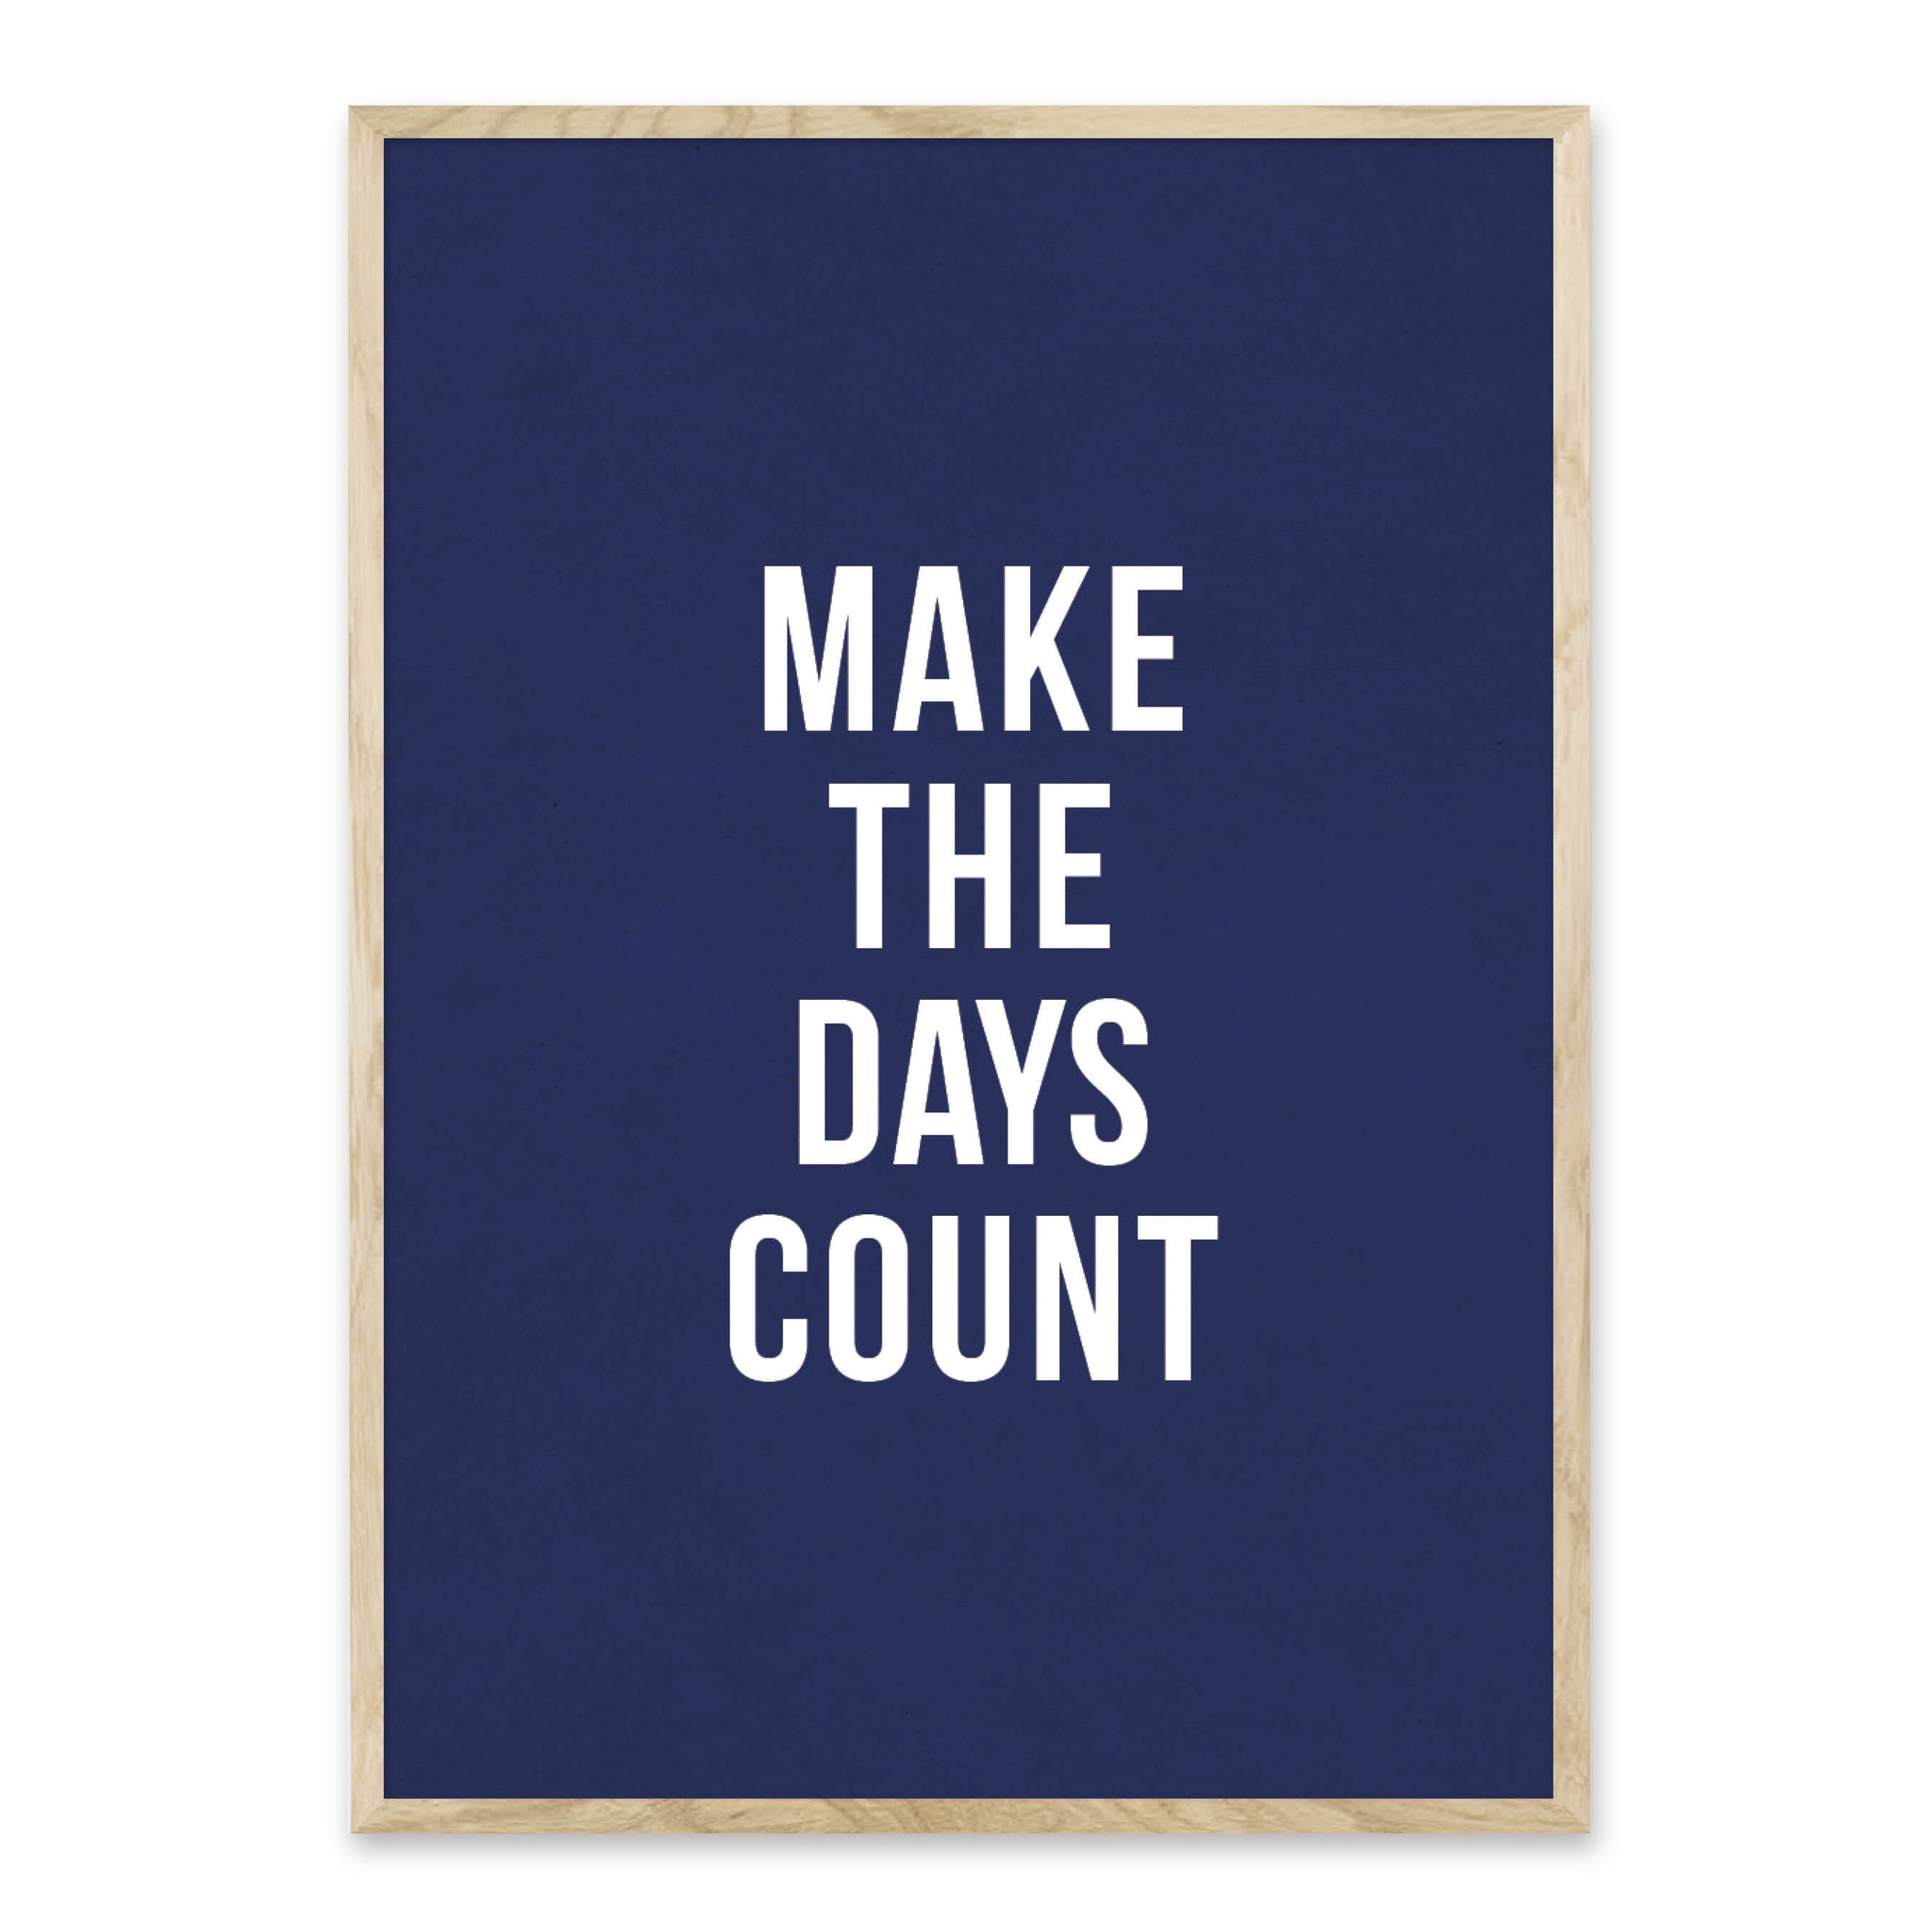 Make the days count